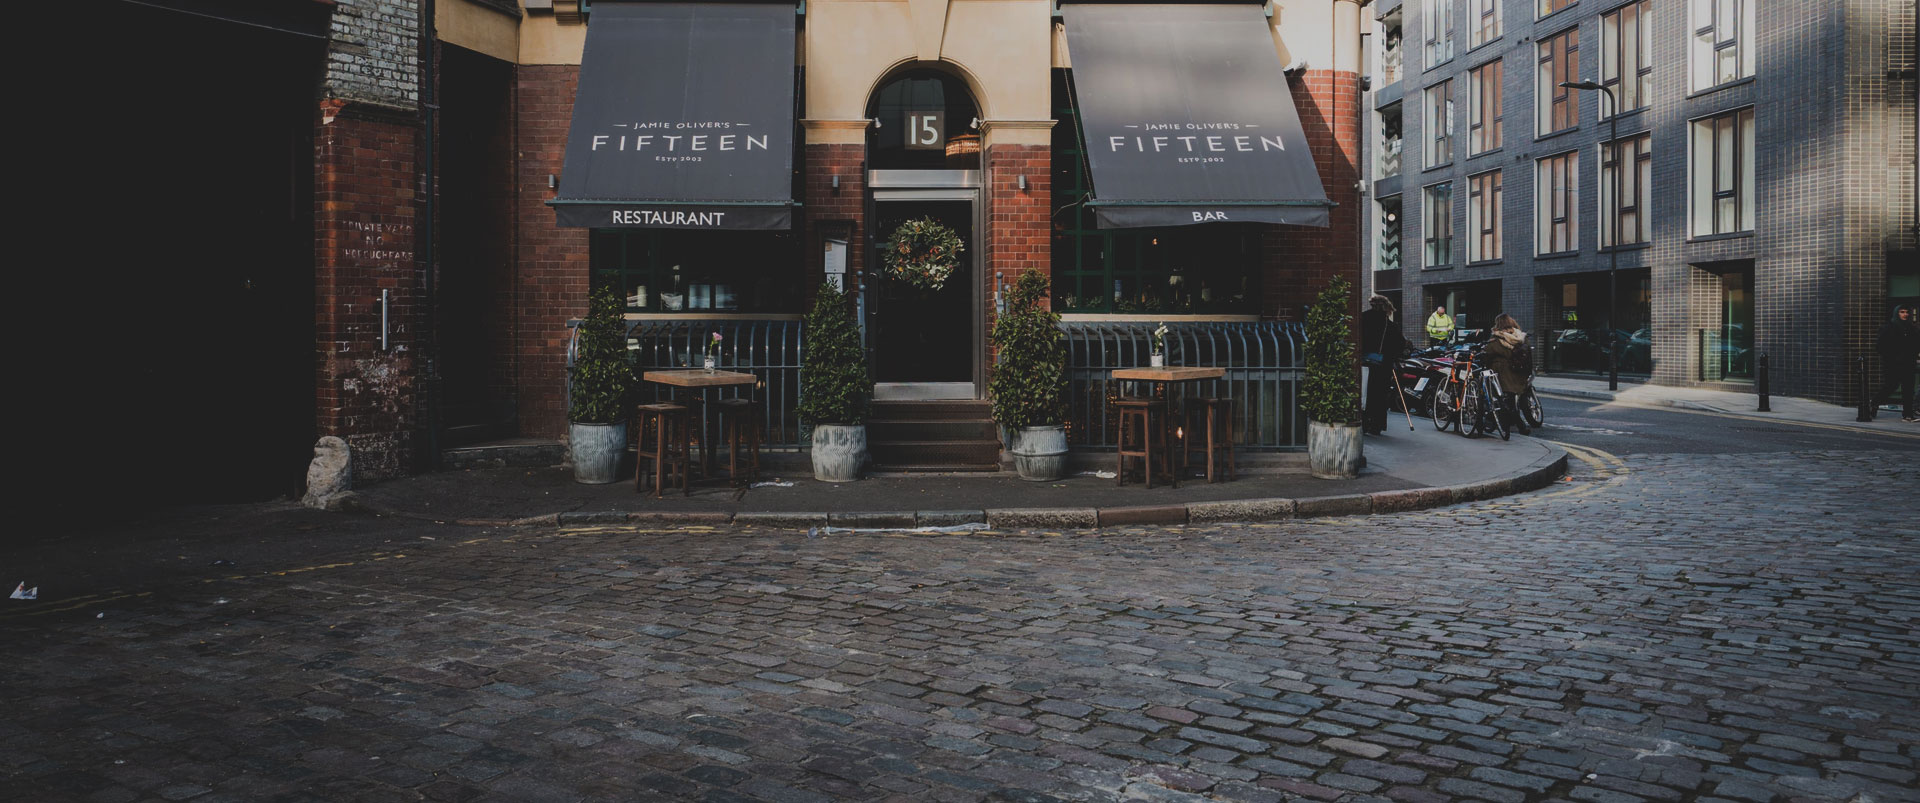 Fifteen Restaurant & Cheese bar